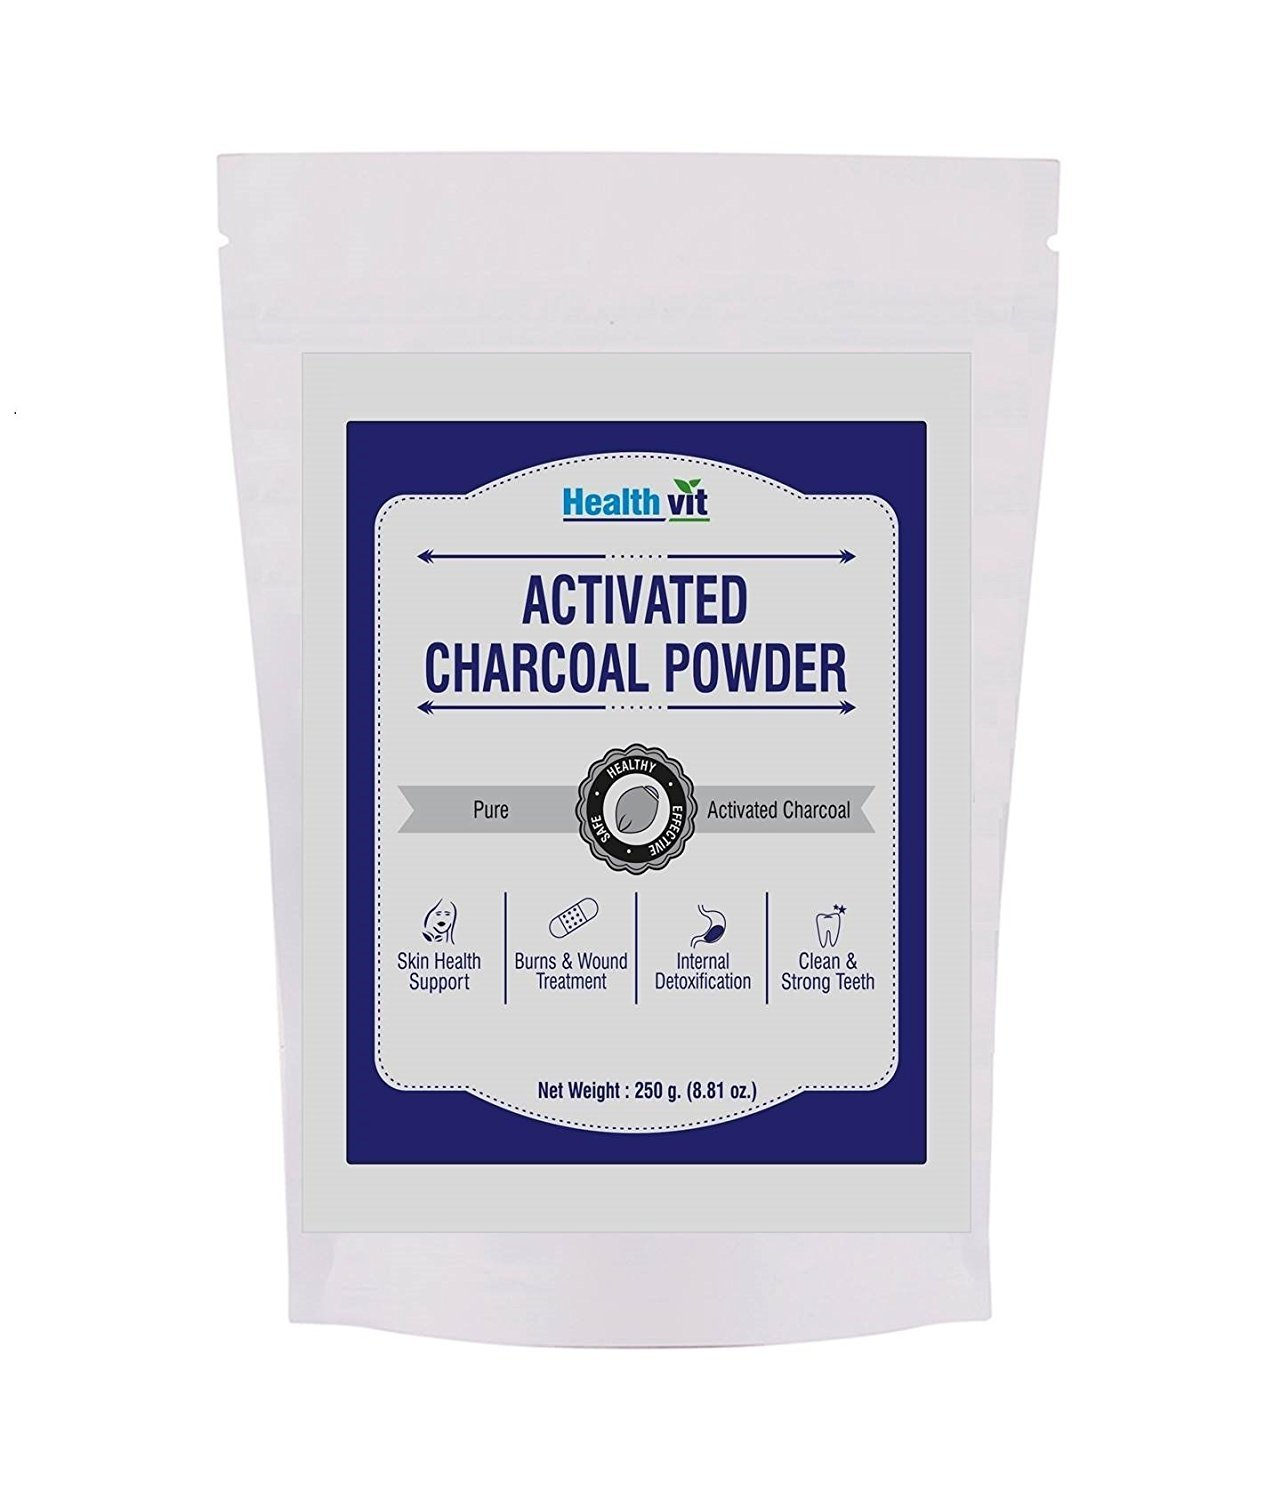 Healthvit Activated Charcoal Powder